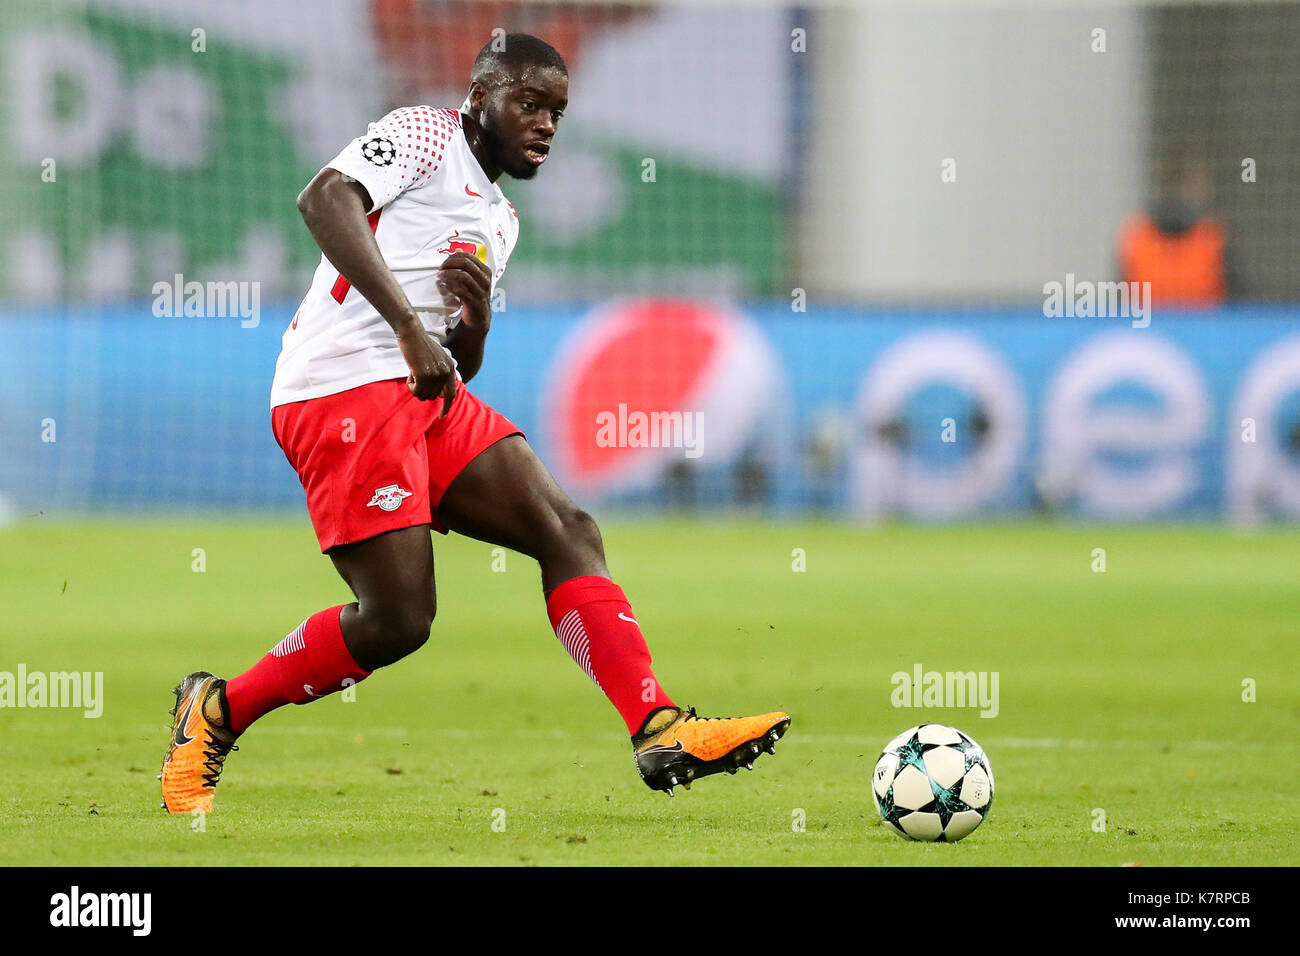 Leipzig S Dayot Upamecano In Action During Uefa Champions League Stock Photo Alamy